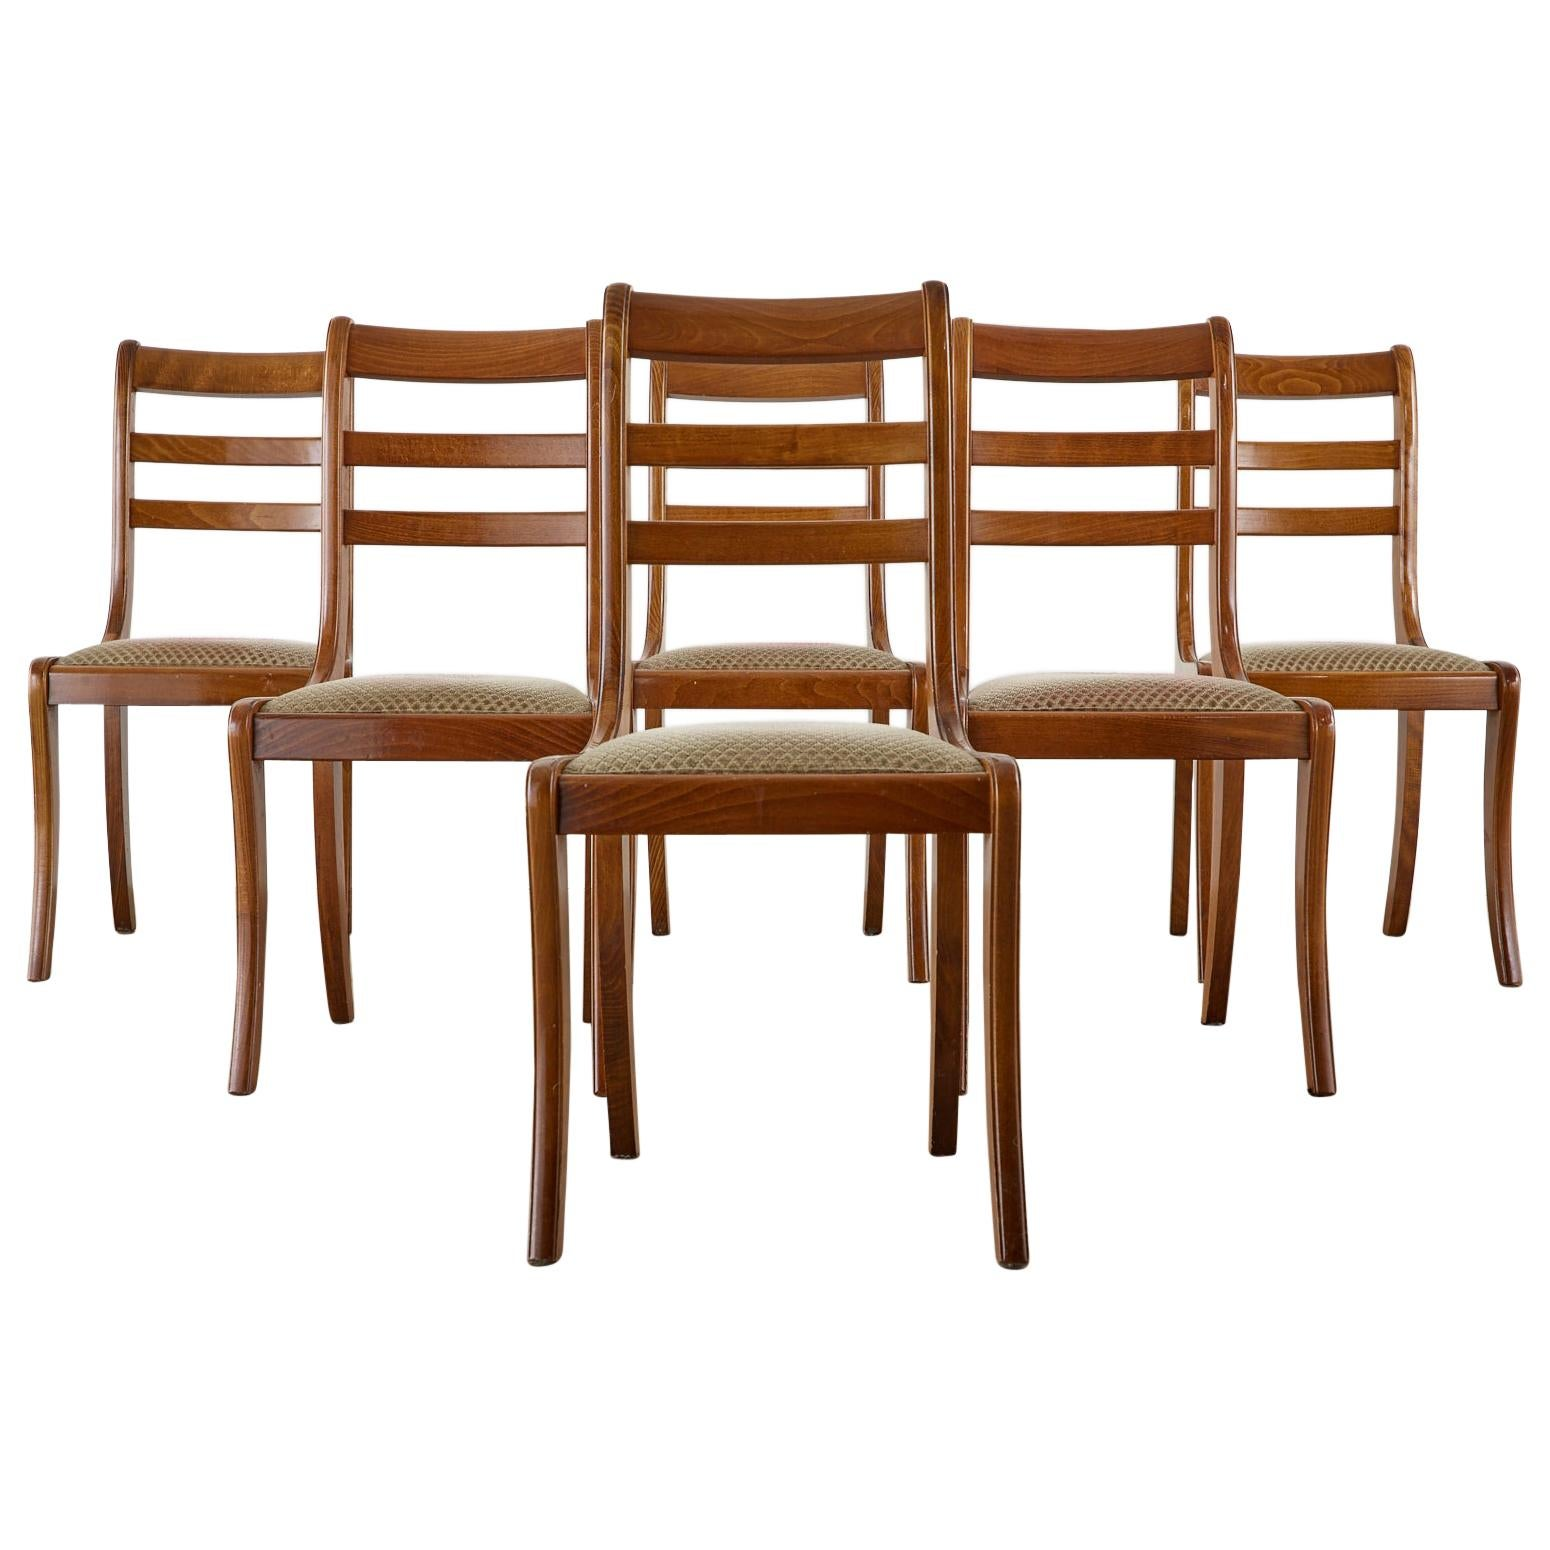 Set of Six English Regency Style Dining Chairs